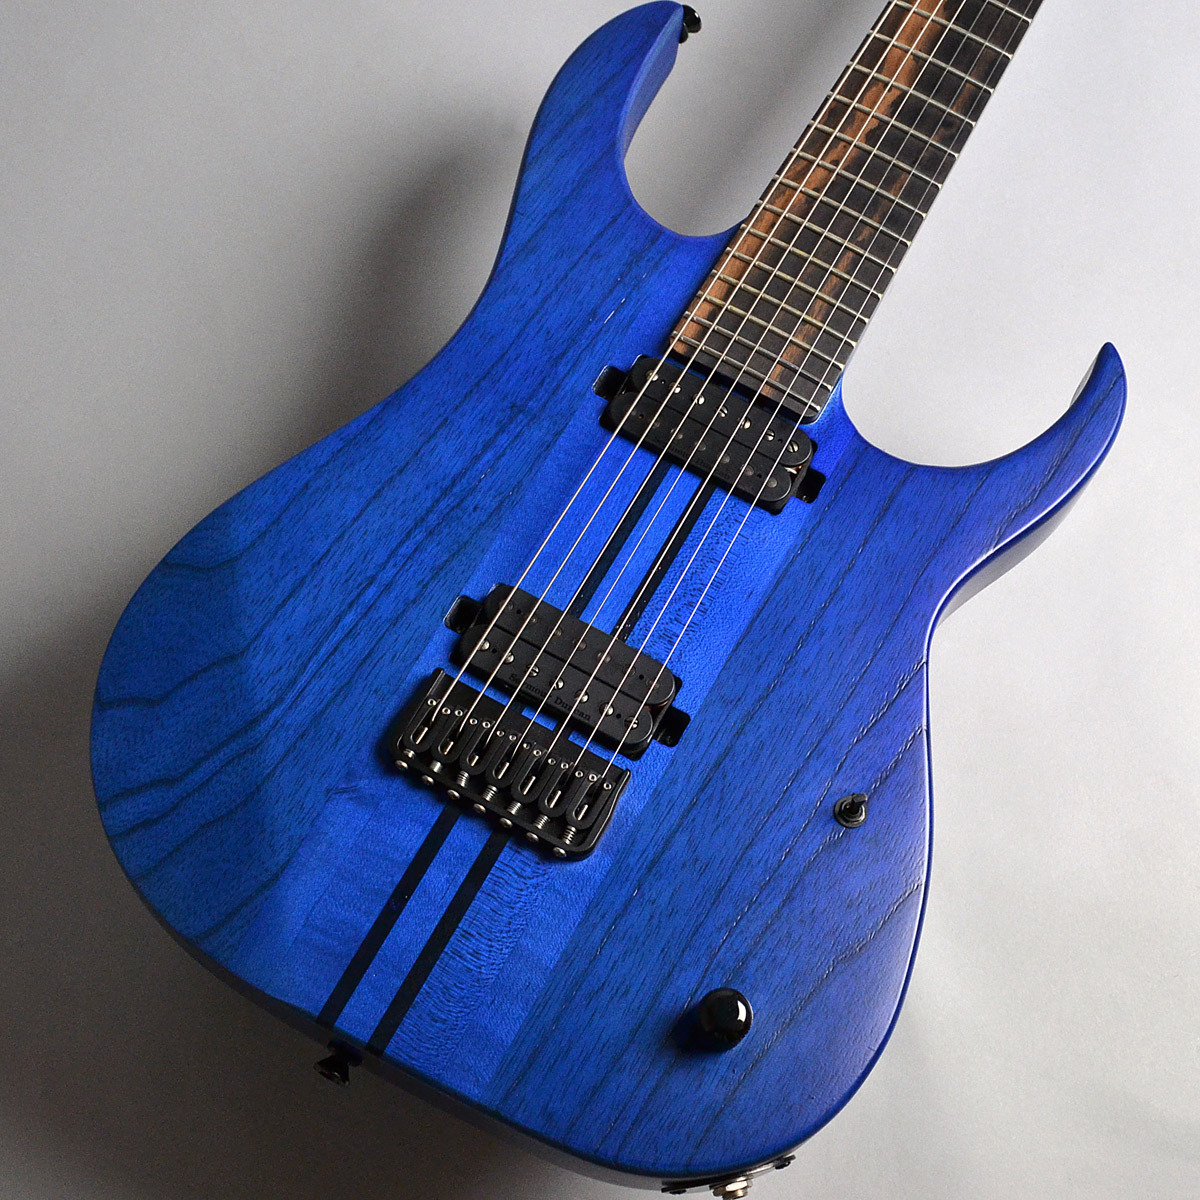 Strictly 7 Guitars Cobra Std7 HT/T / Dark Blue Stain エレキギター(7弦) 【ストリクトリー7ギターズ】【新宿PePe店】【Seymour Duncan】【決算セール】